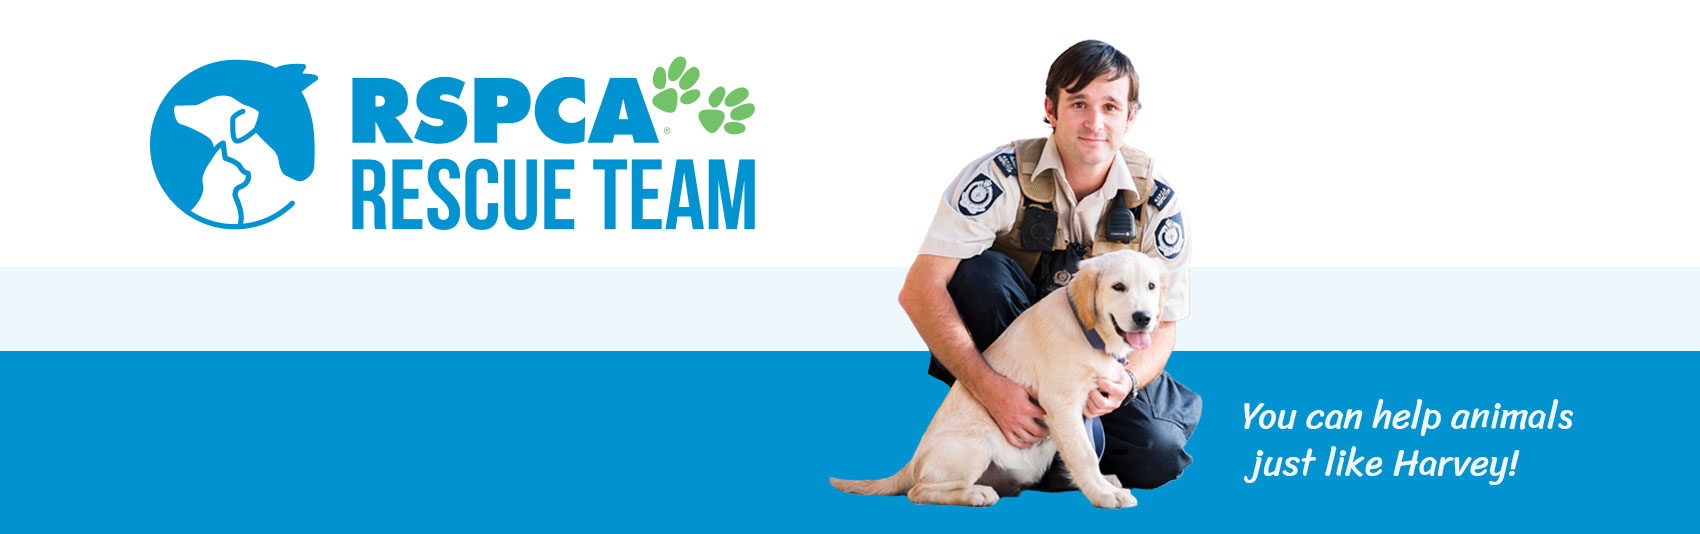 Rspca Rescue Team Rspca Act